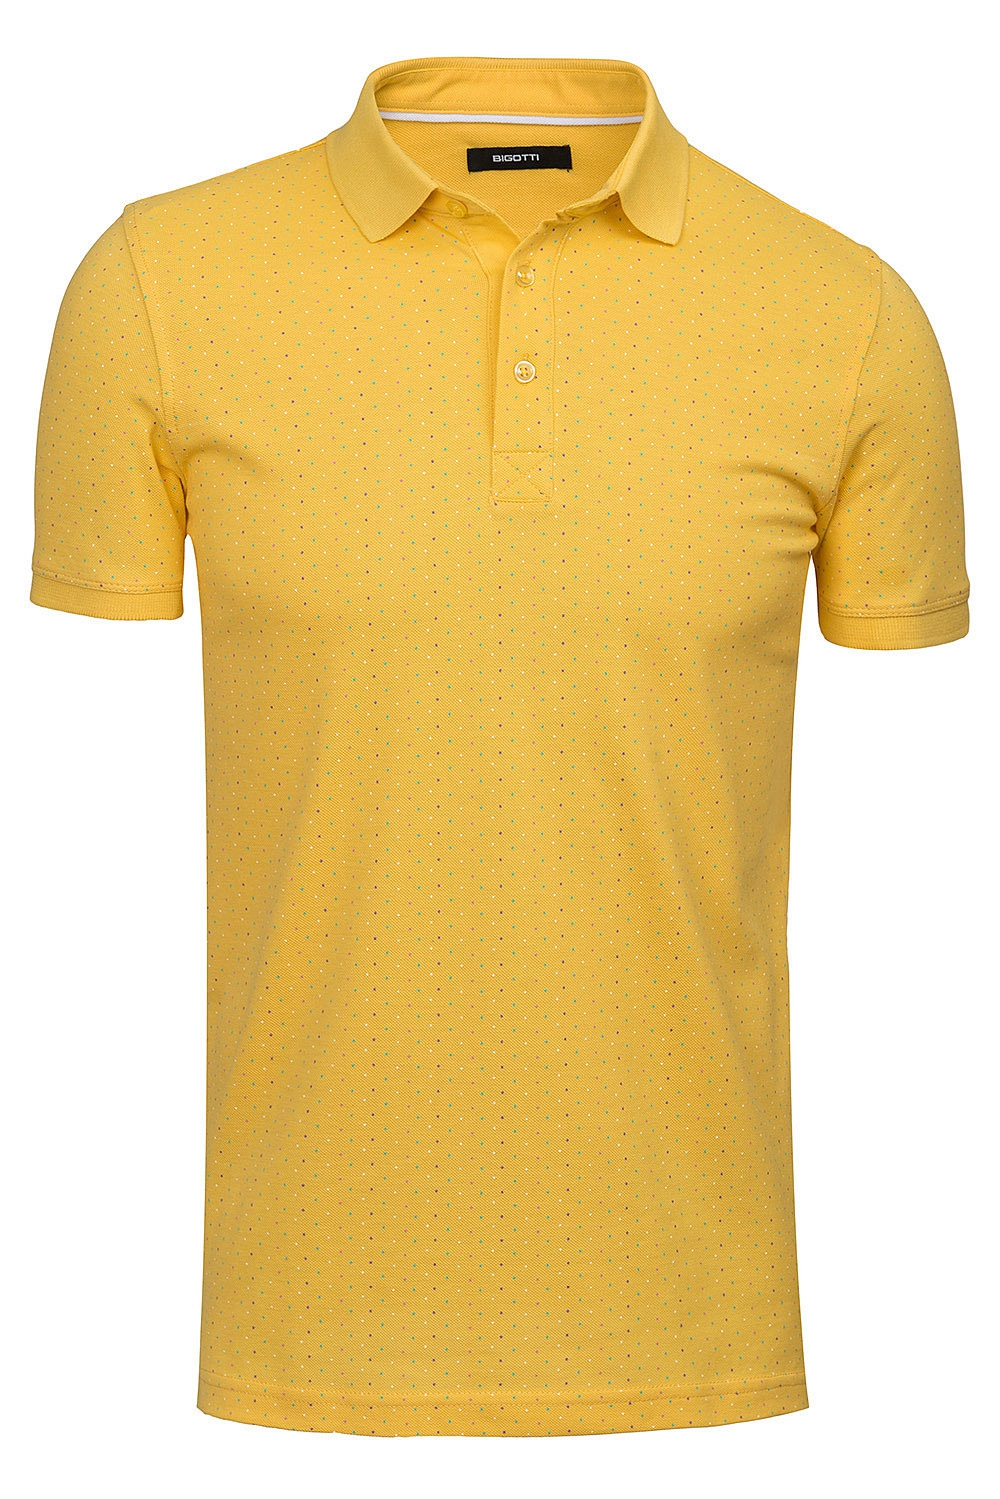 Tricou polo galben microprint 0